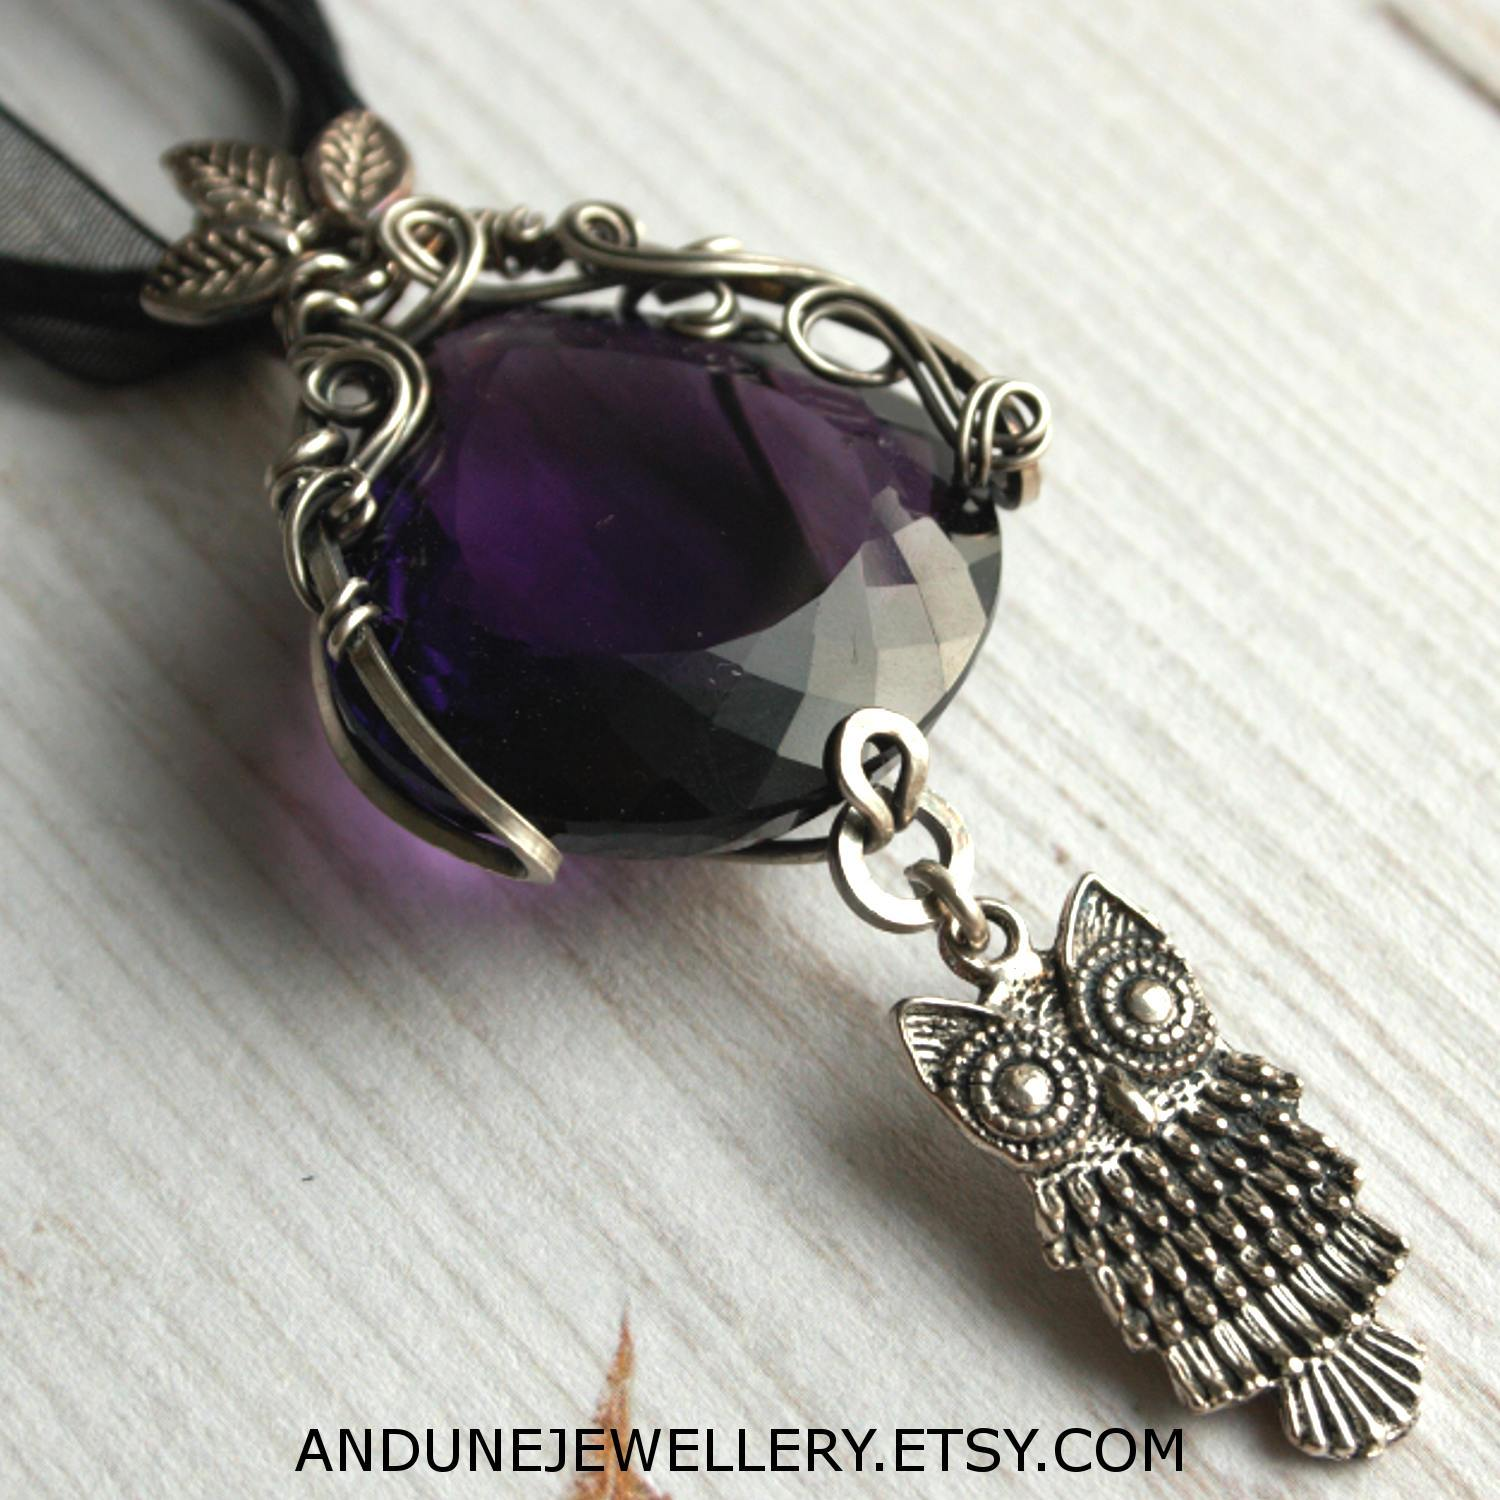 Amethyst Necklace with Owl Charm - Andune Jewellery